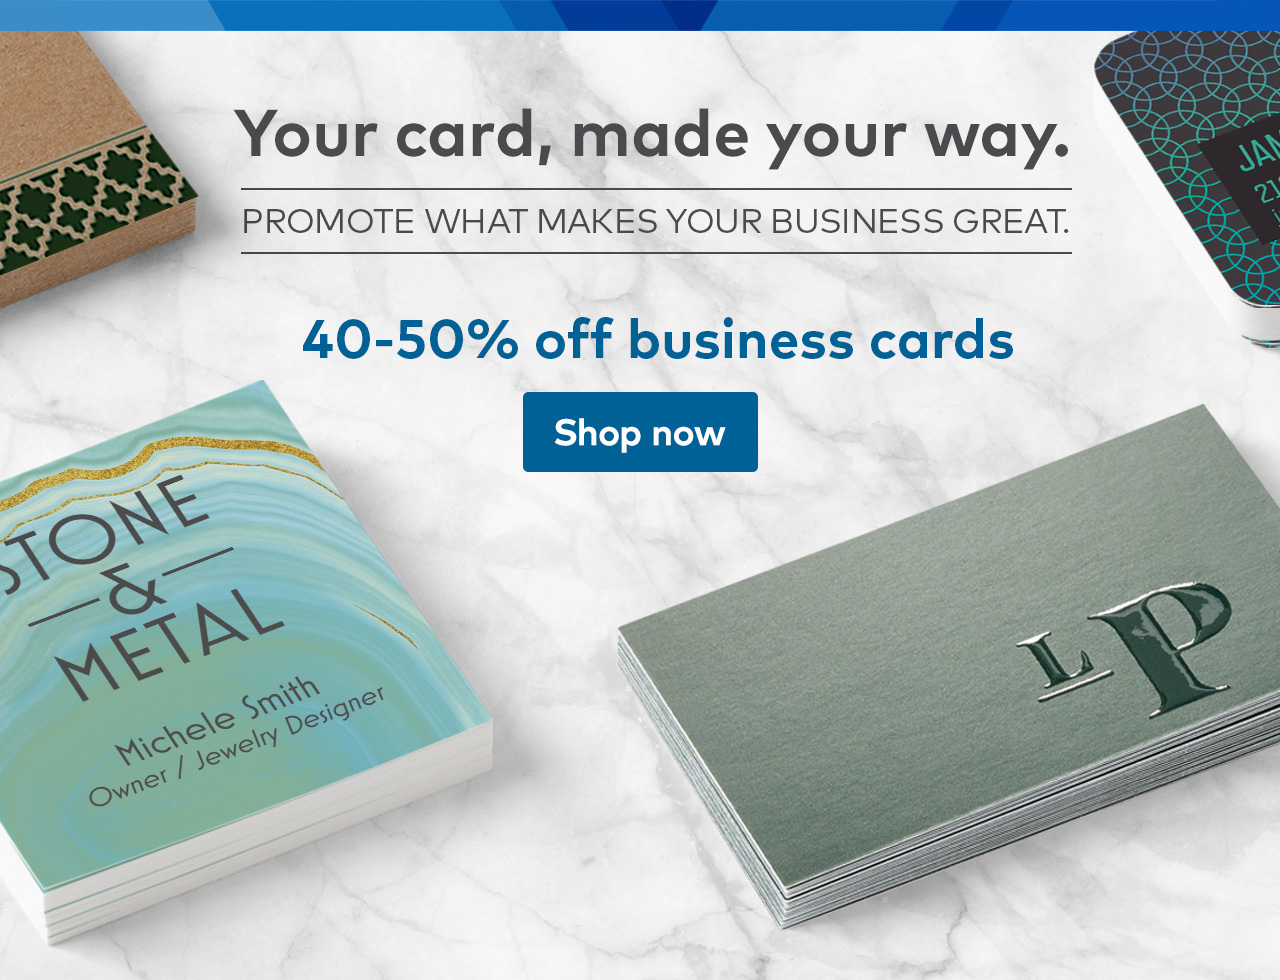 Vistaprint: Try premium business card options for only $5. | Milled